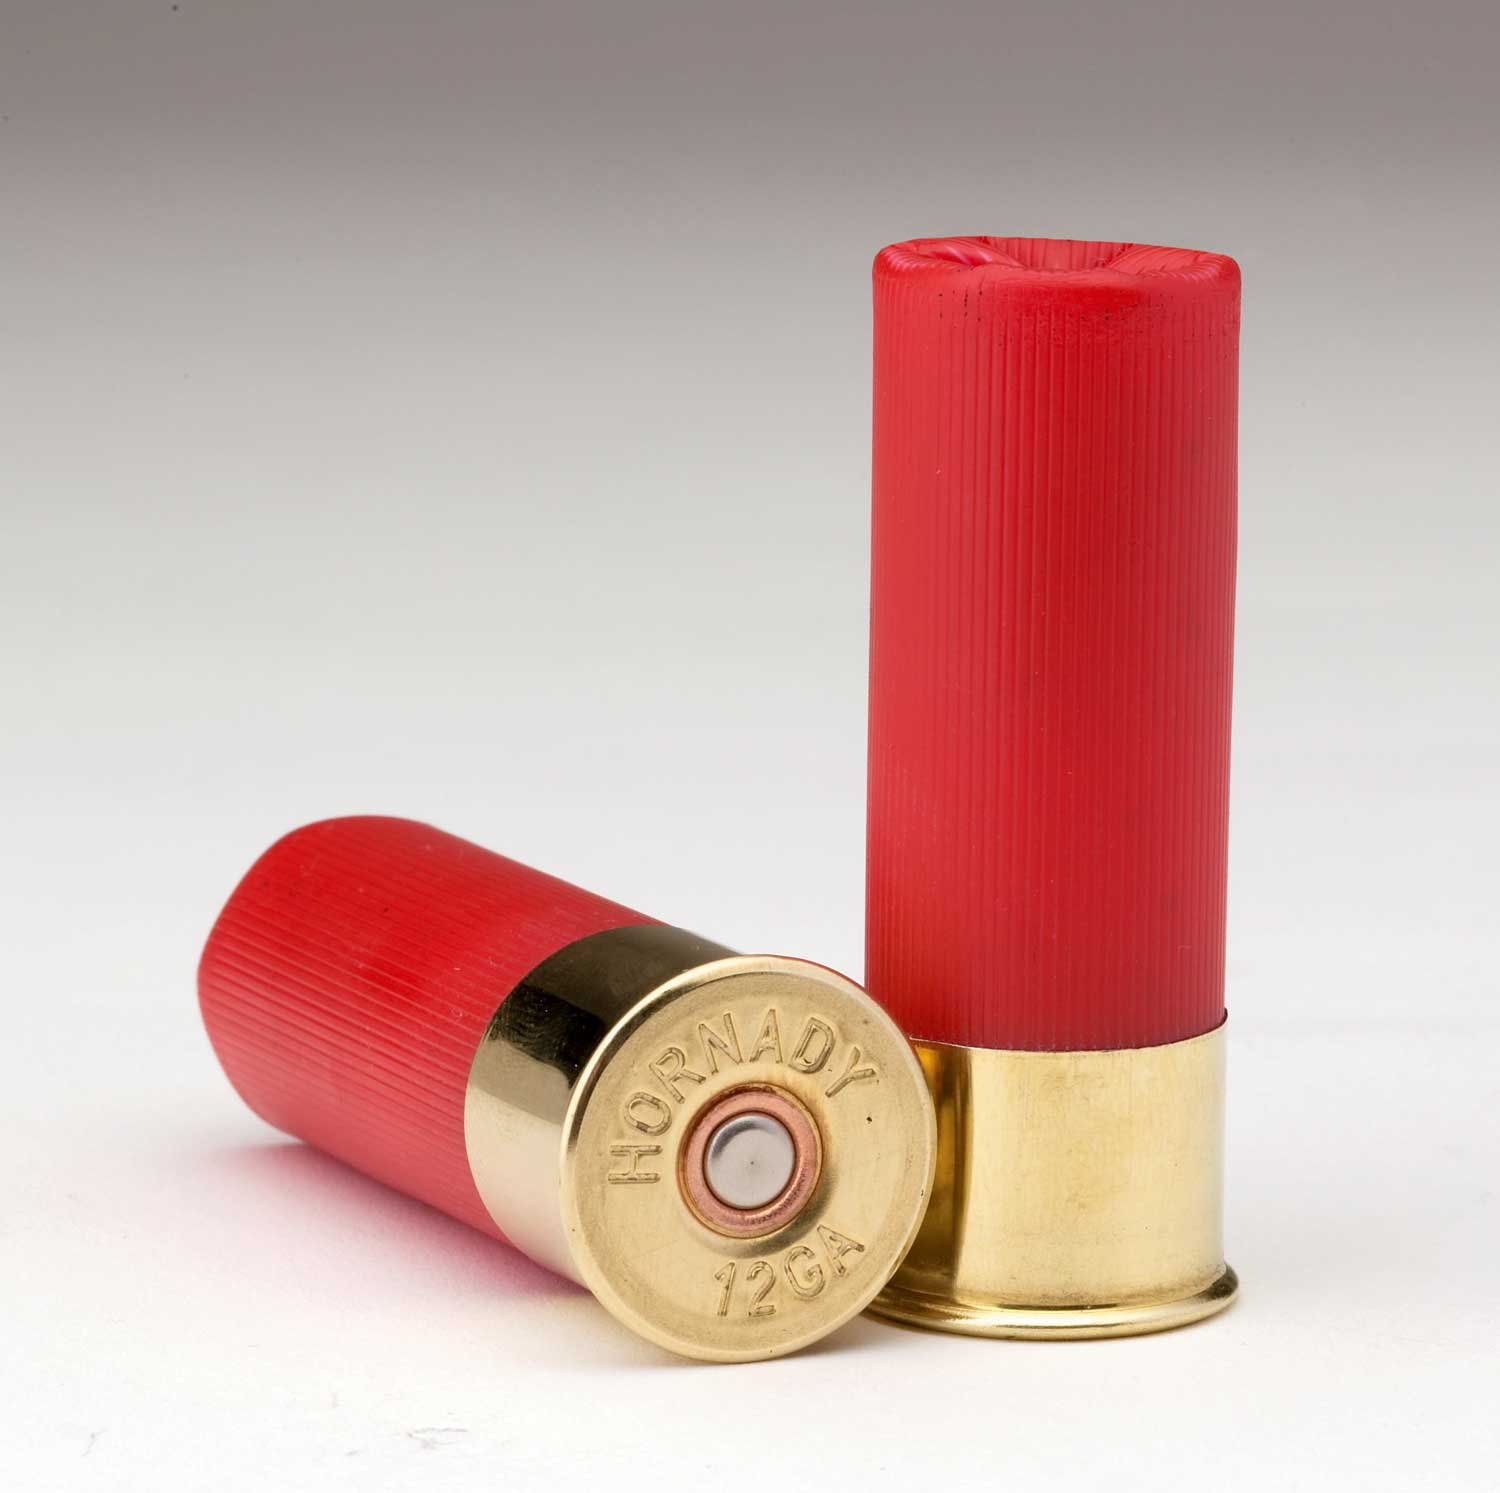 Free photo: Shotgun shells - Shotgun, White, Shell - Free Download - Jooinn